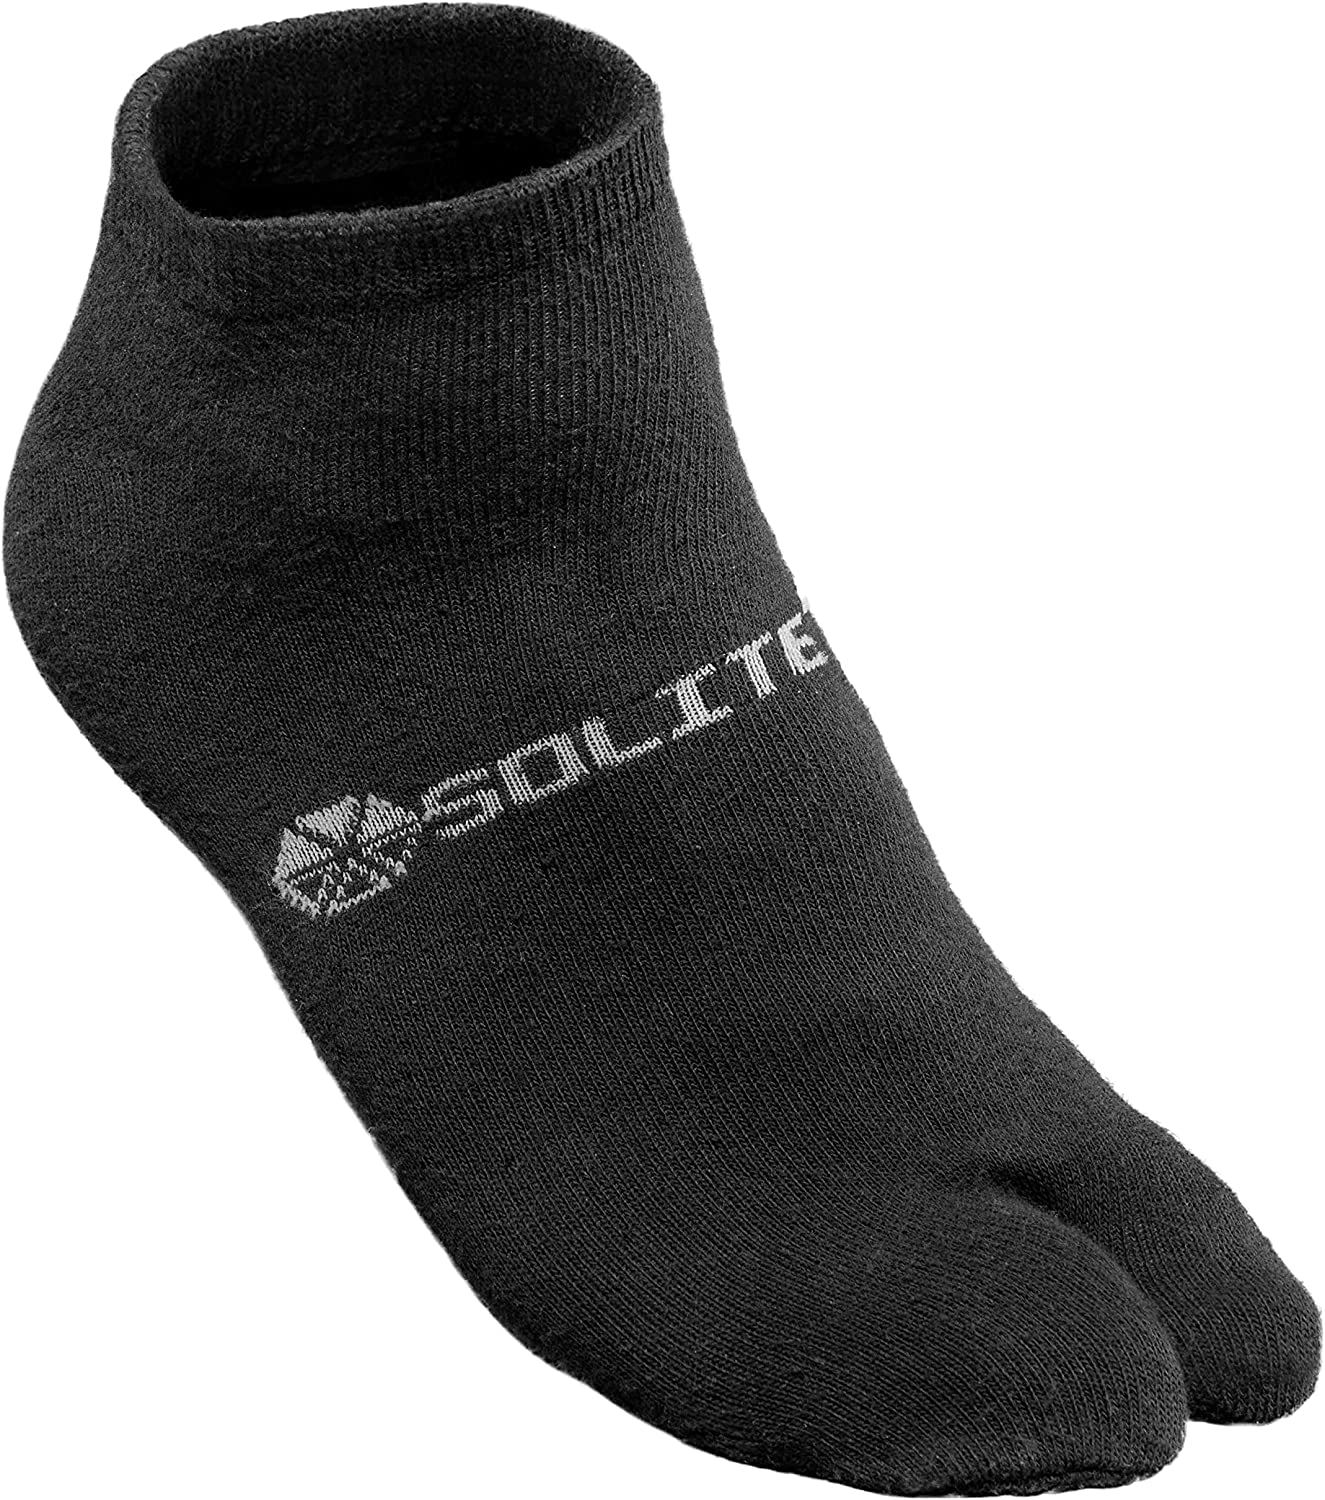 Solite 2021 Knit Heat Socks Booster outlet Surprise price Sports Water